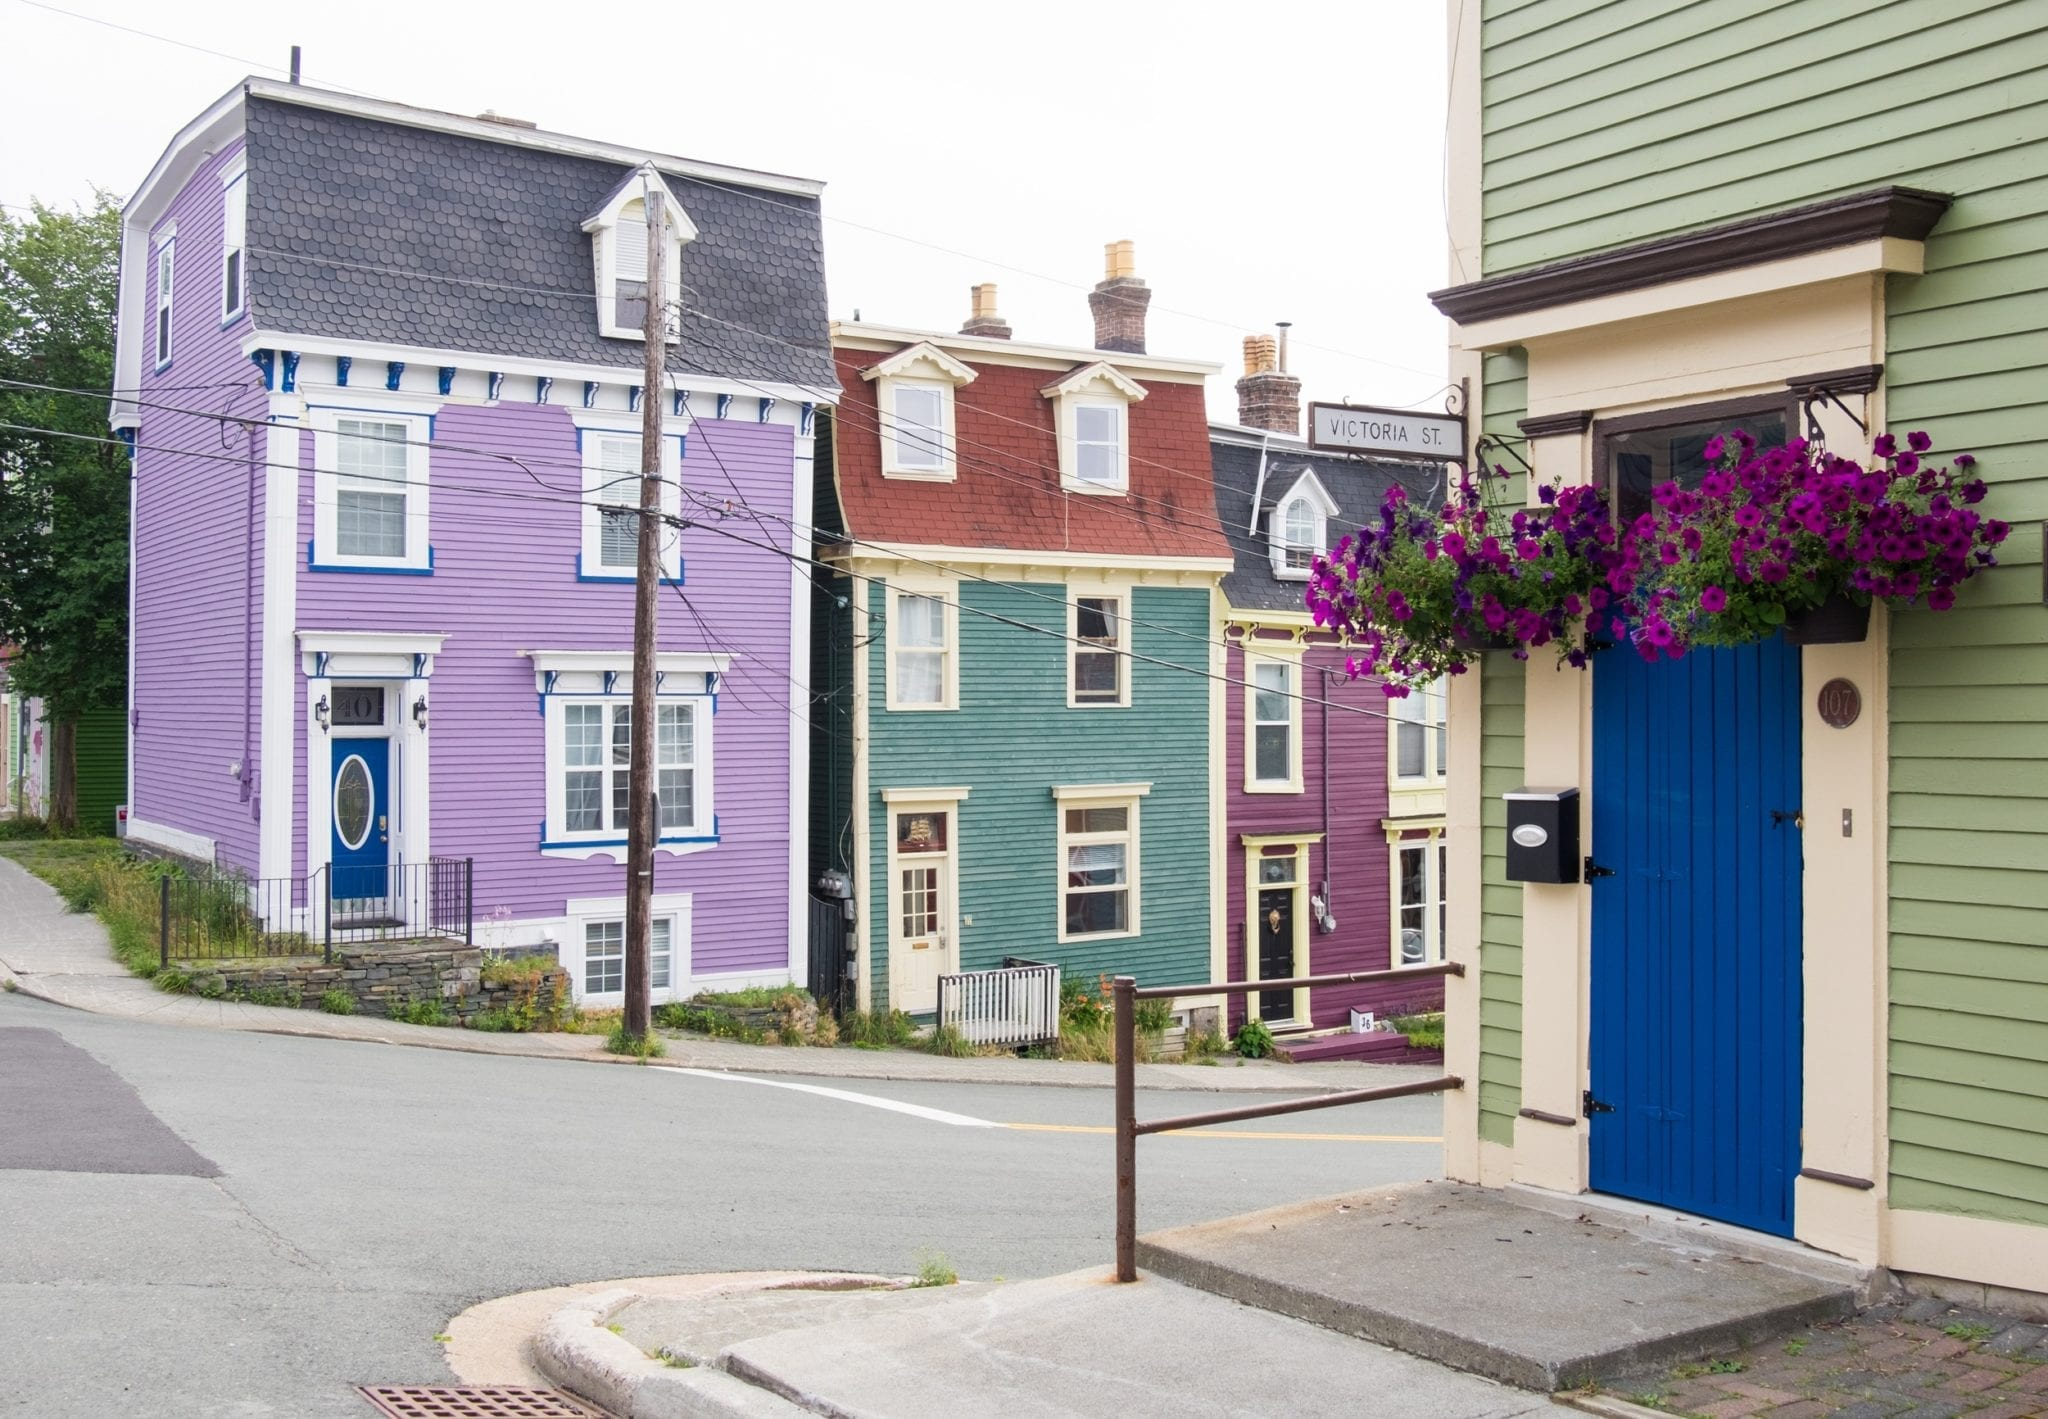 Victoria Street in Jelly Bean Row, with a bright purple, dark blue-green, plum, and pea-green set of houses.